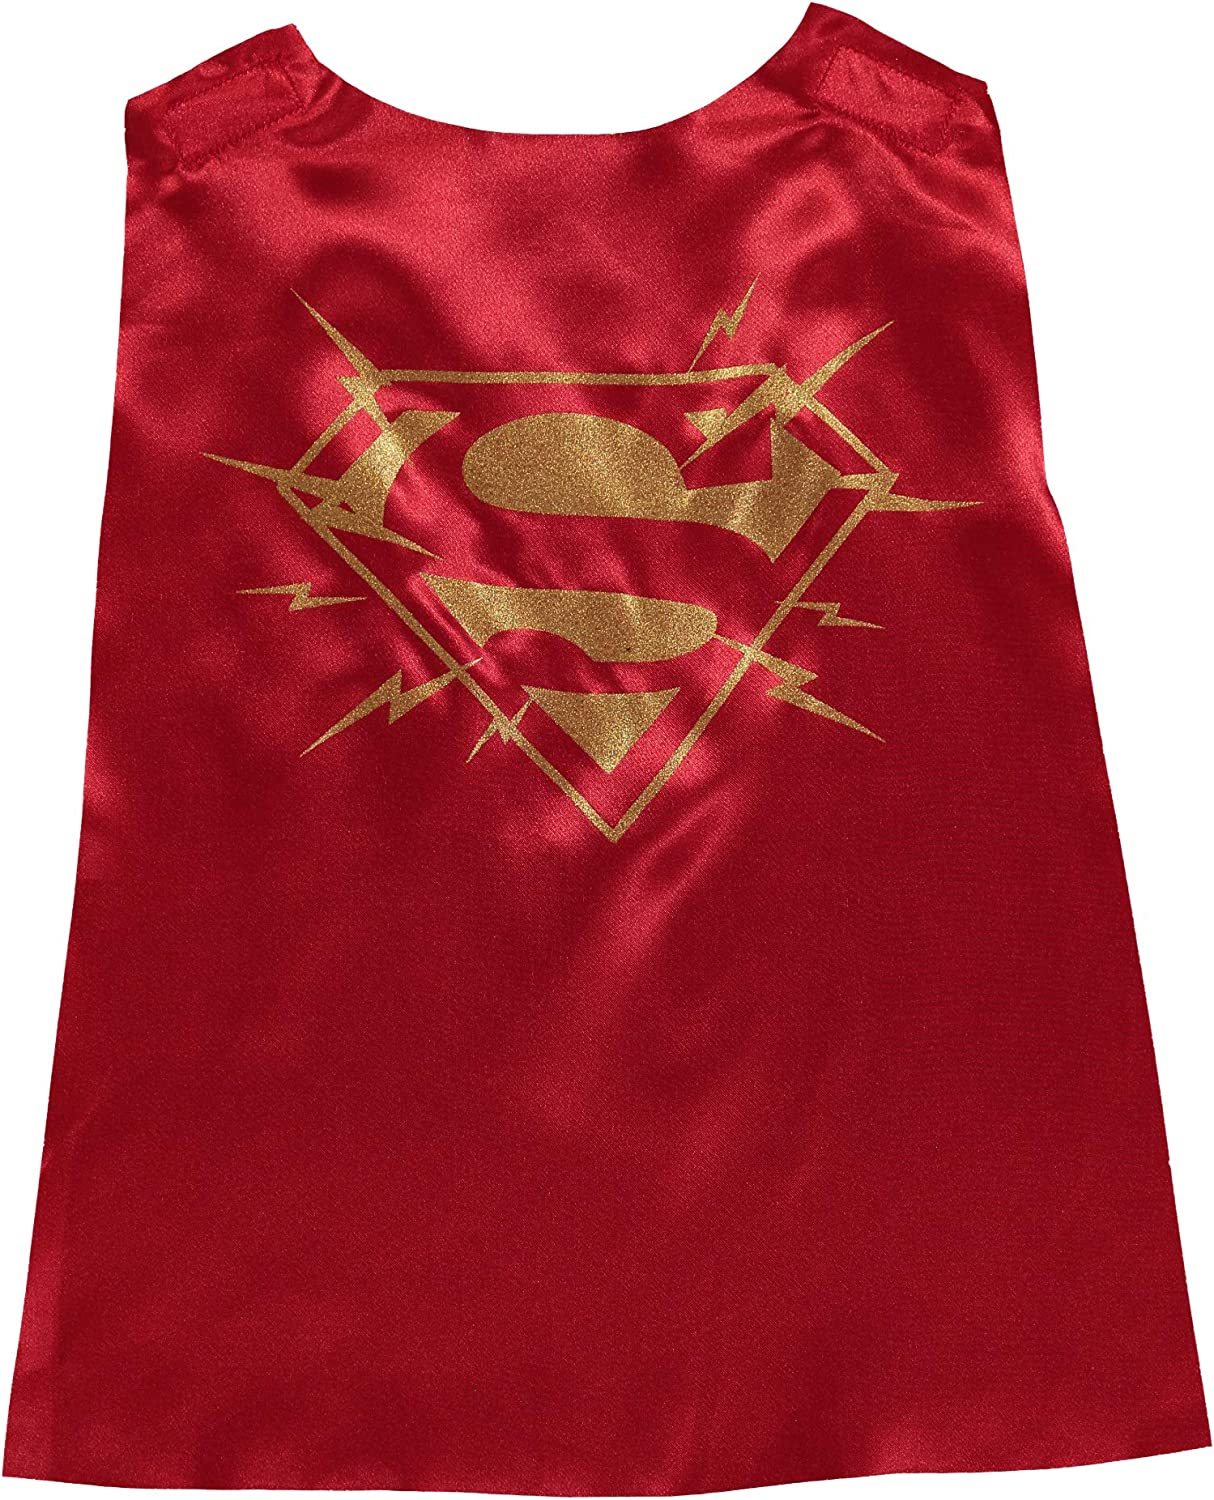 DC Comics Superman Costume for Boys Baby Boy Costume Infant Superman Clothes Superhero Costumes for Babies